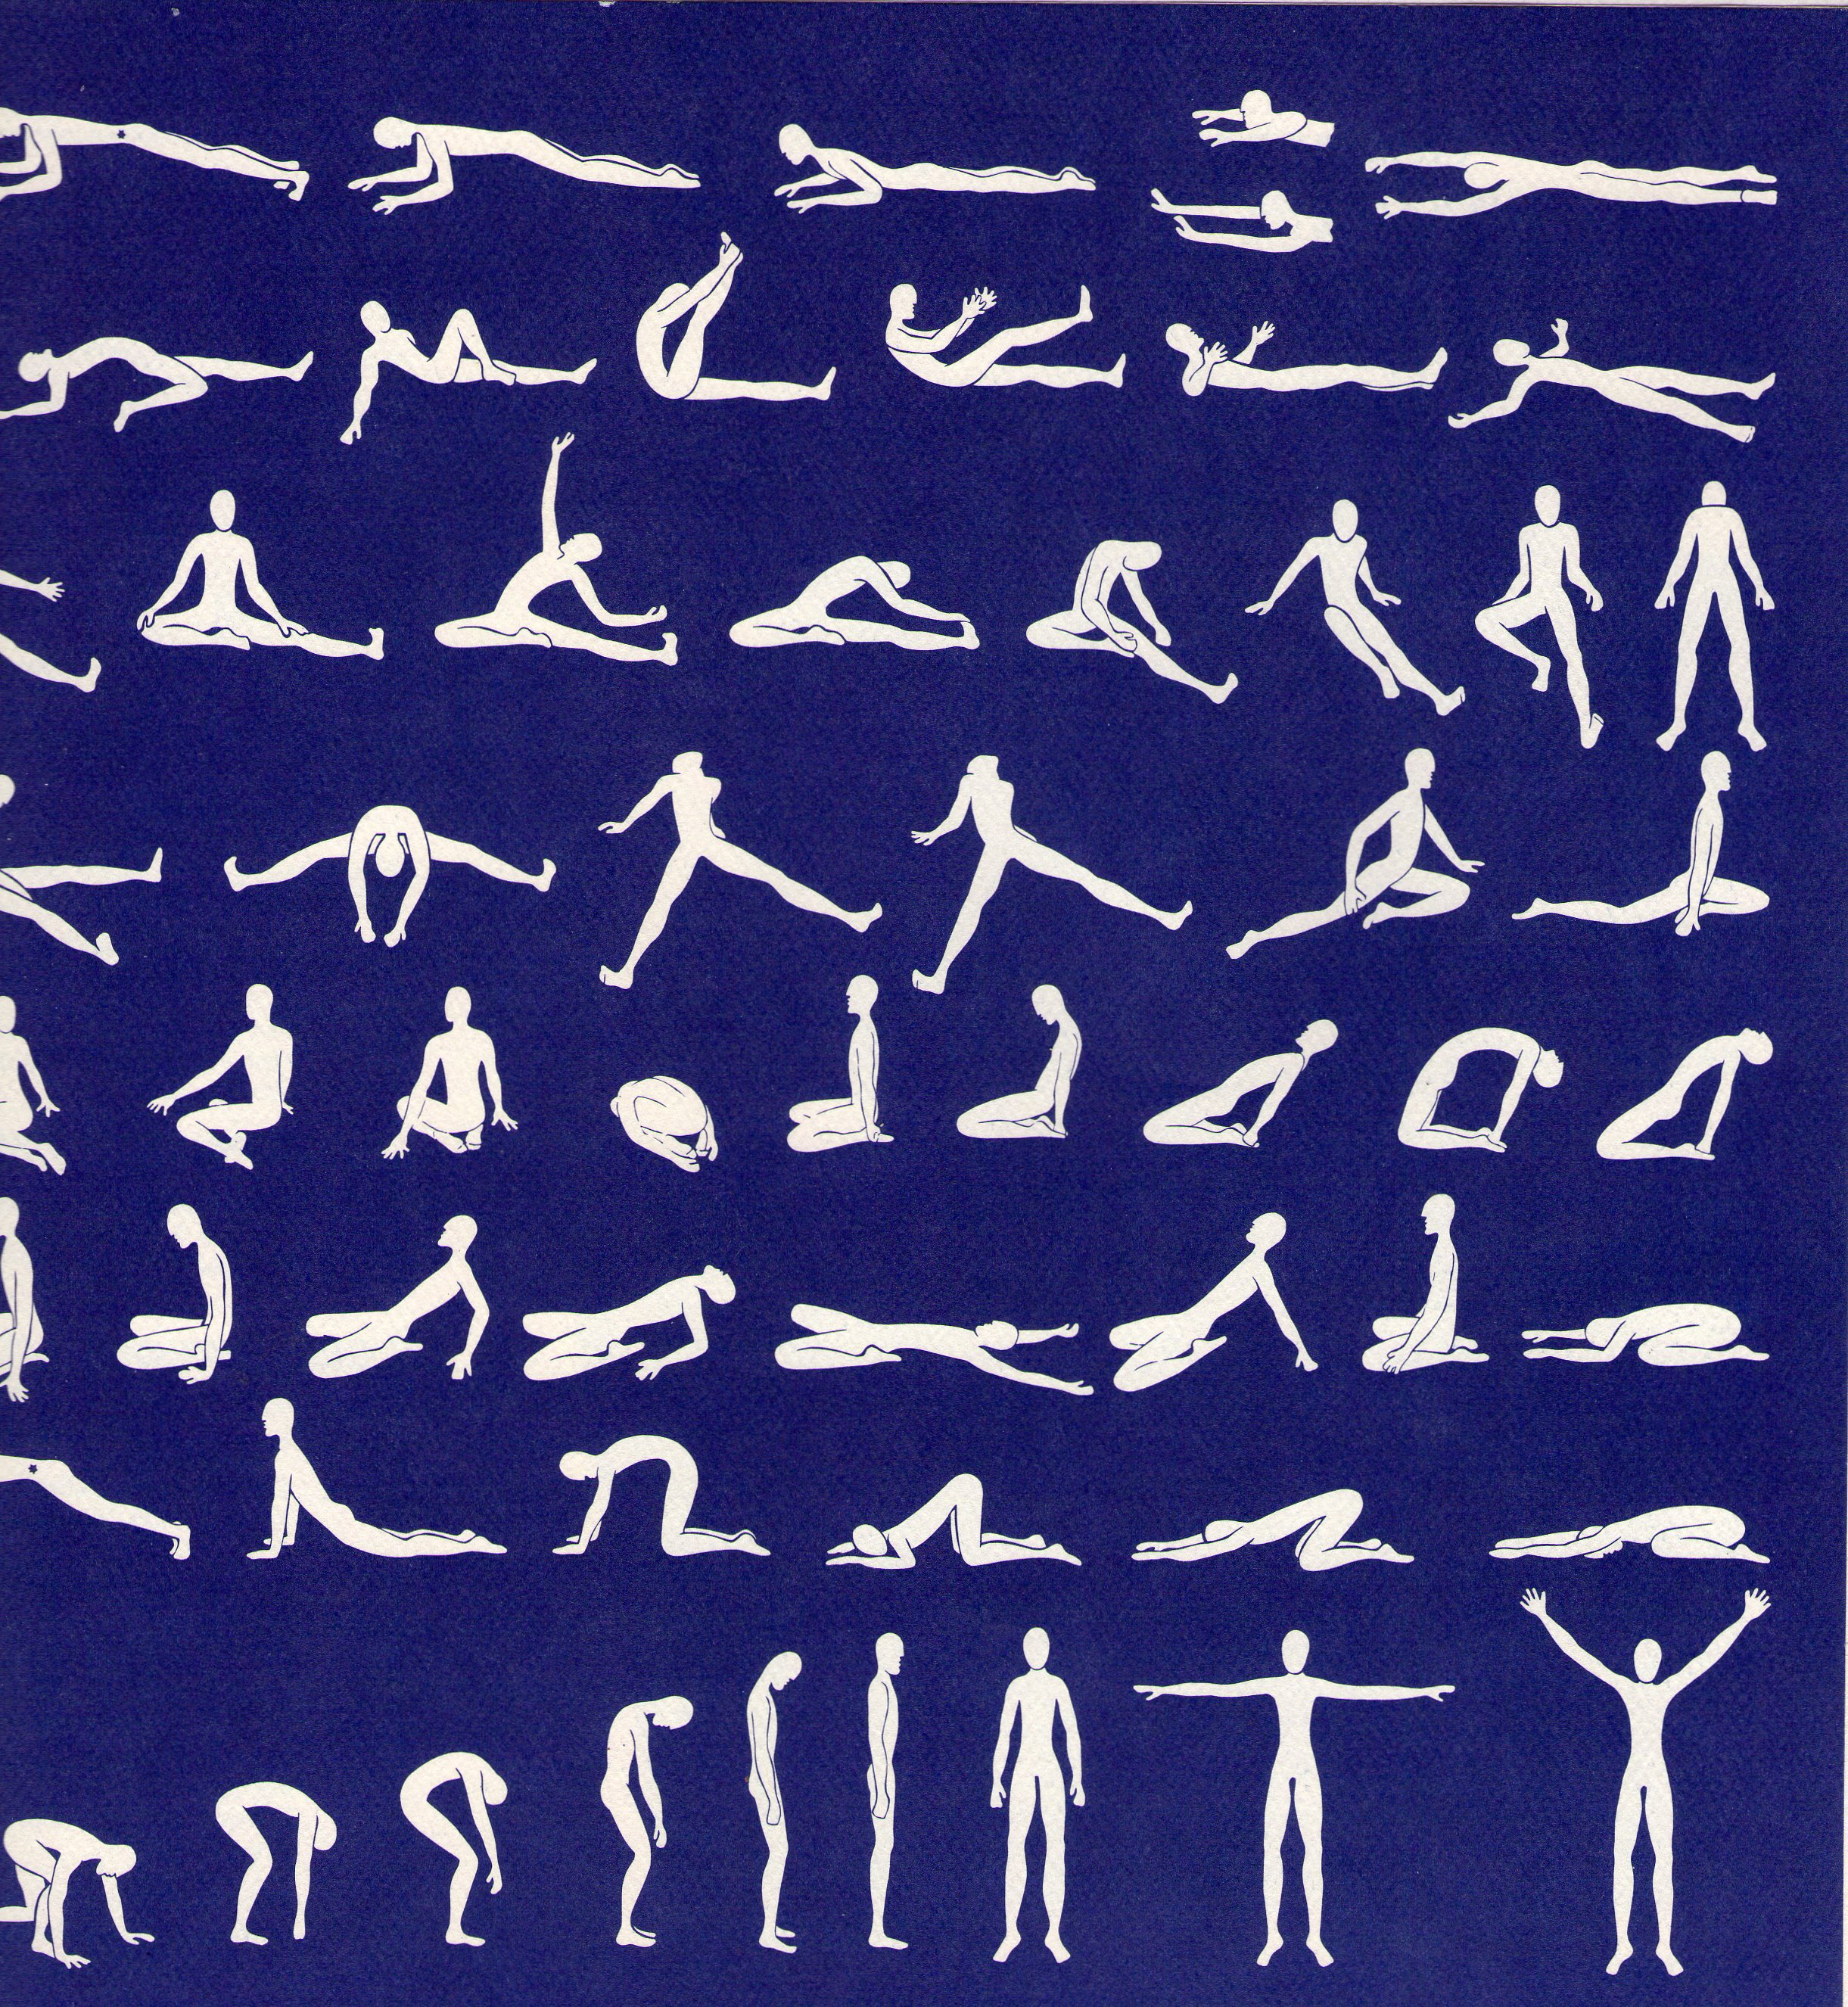 Image credit: Movement Ritual book / Anna Halprin